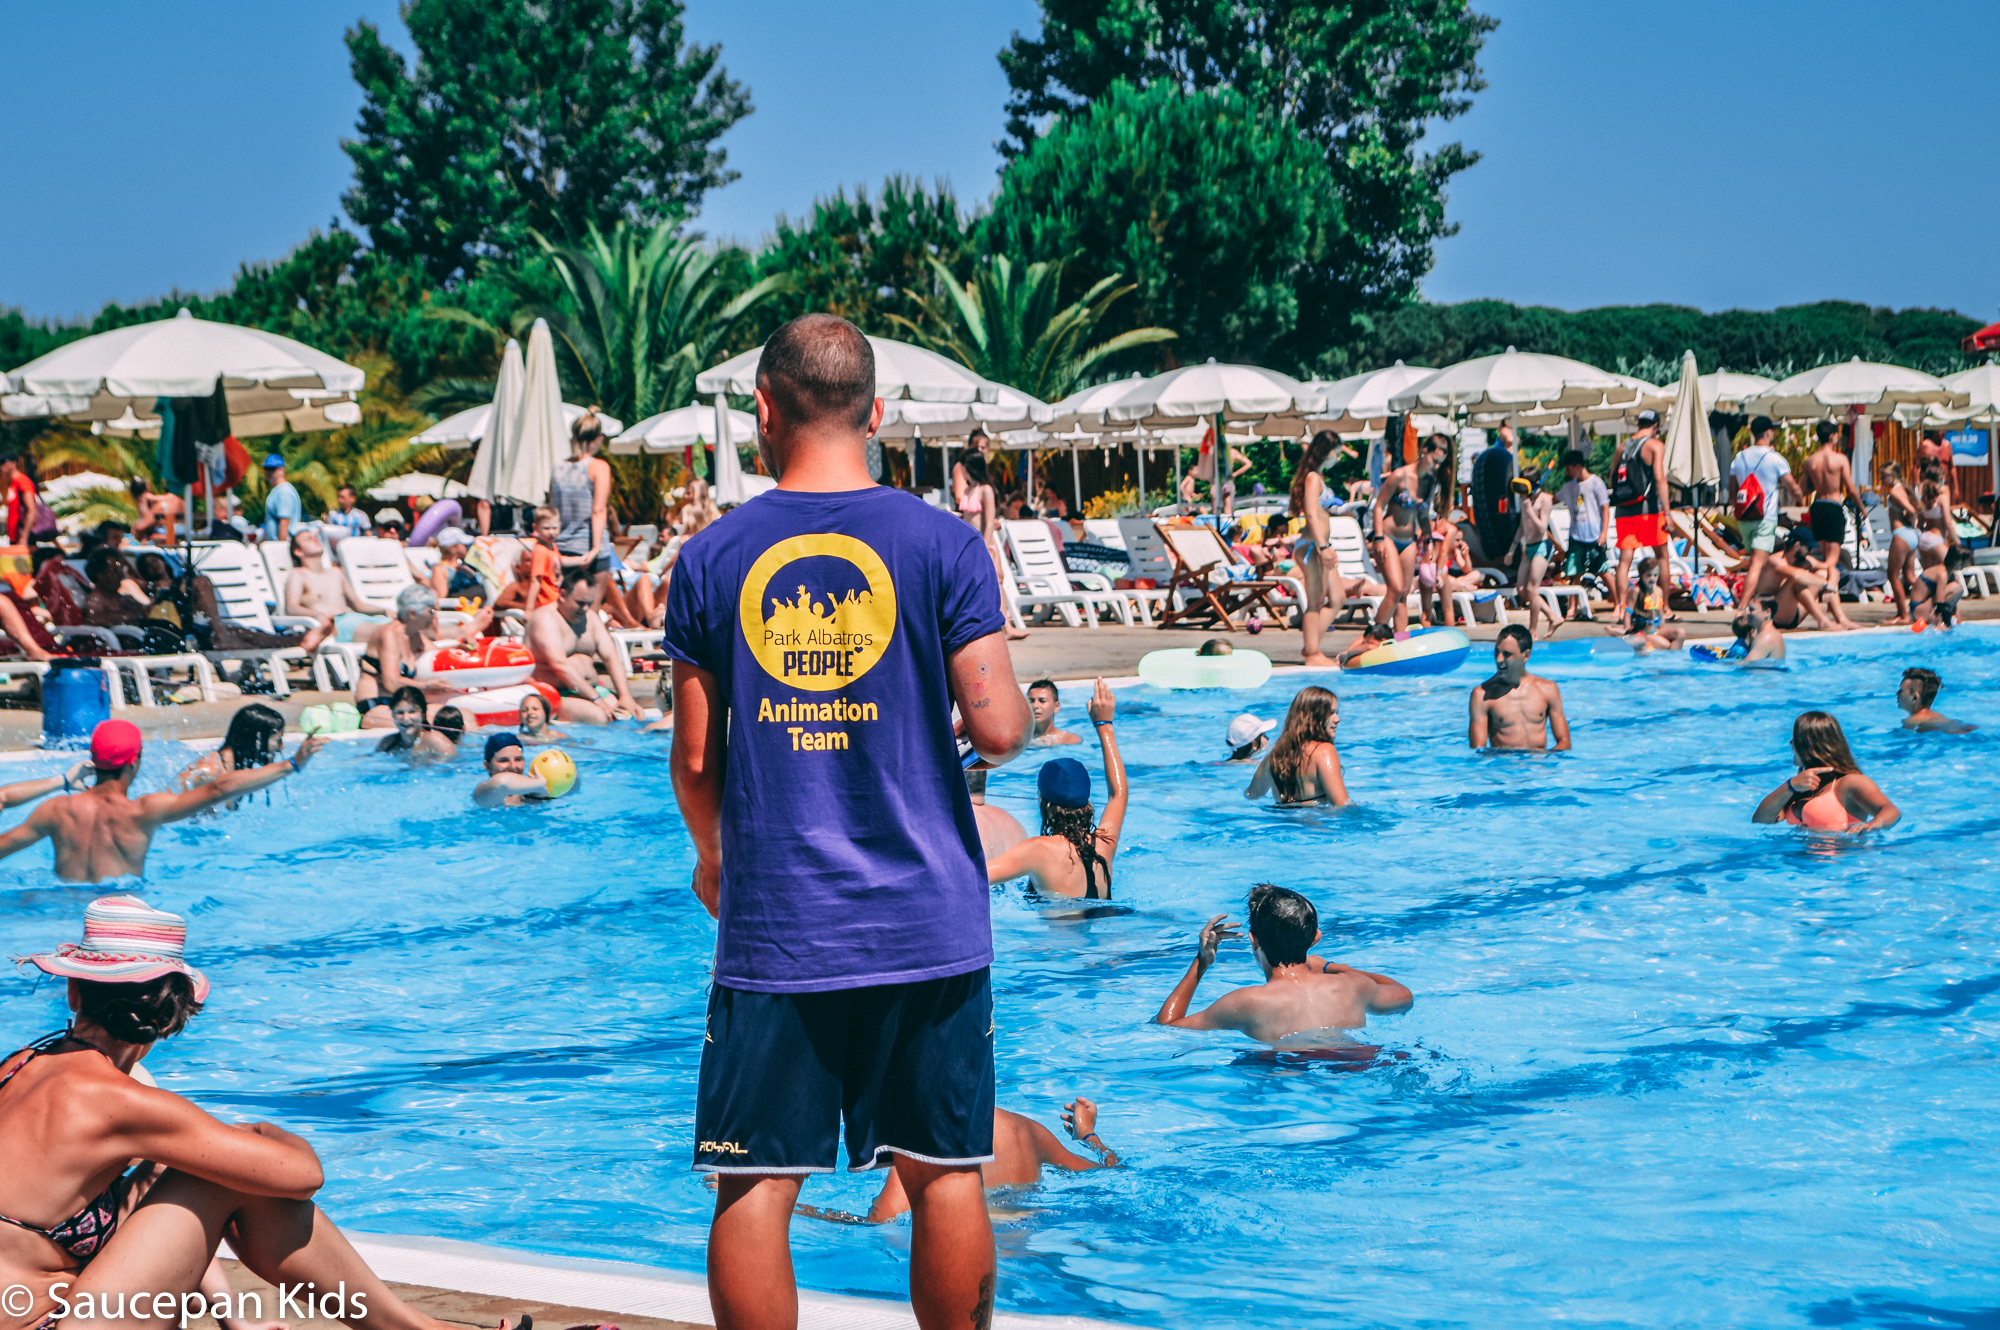 Saucepan Kids visit and review Parc Albatros in Tuscany with Canvas Holidays 2017 - One of the five pools